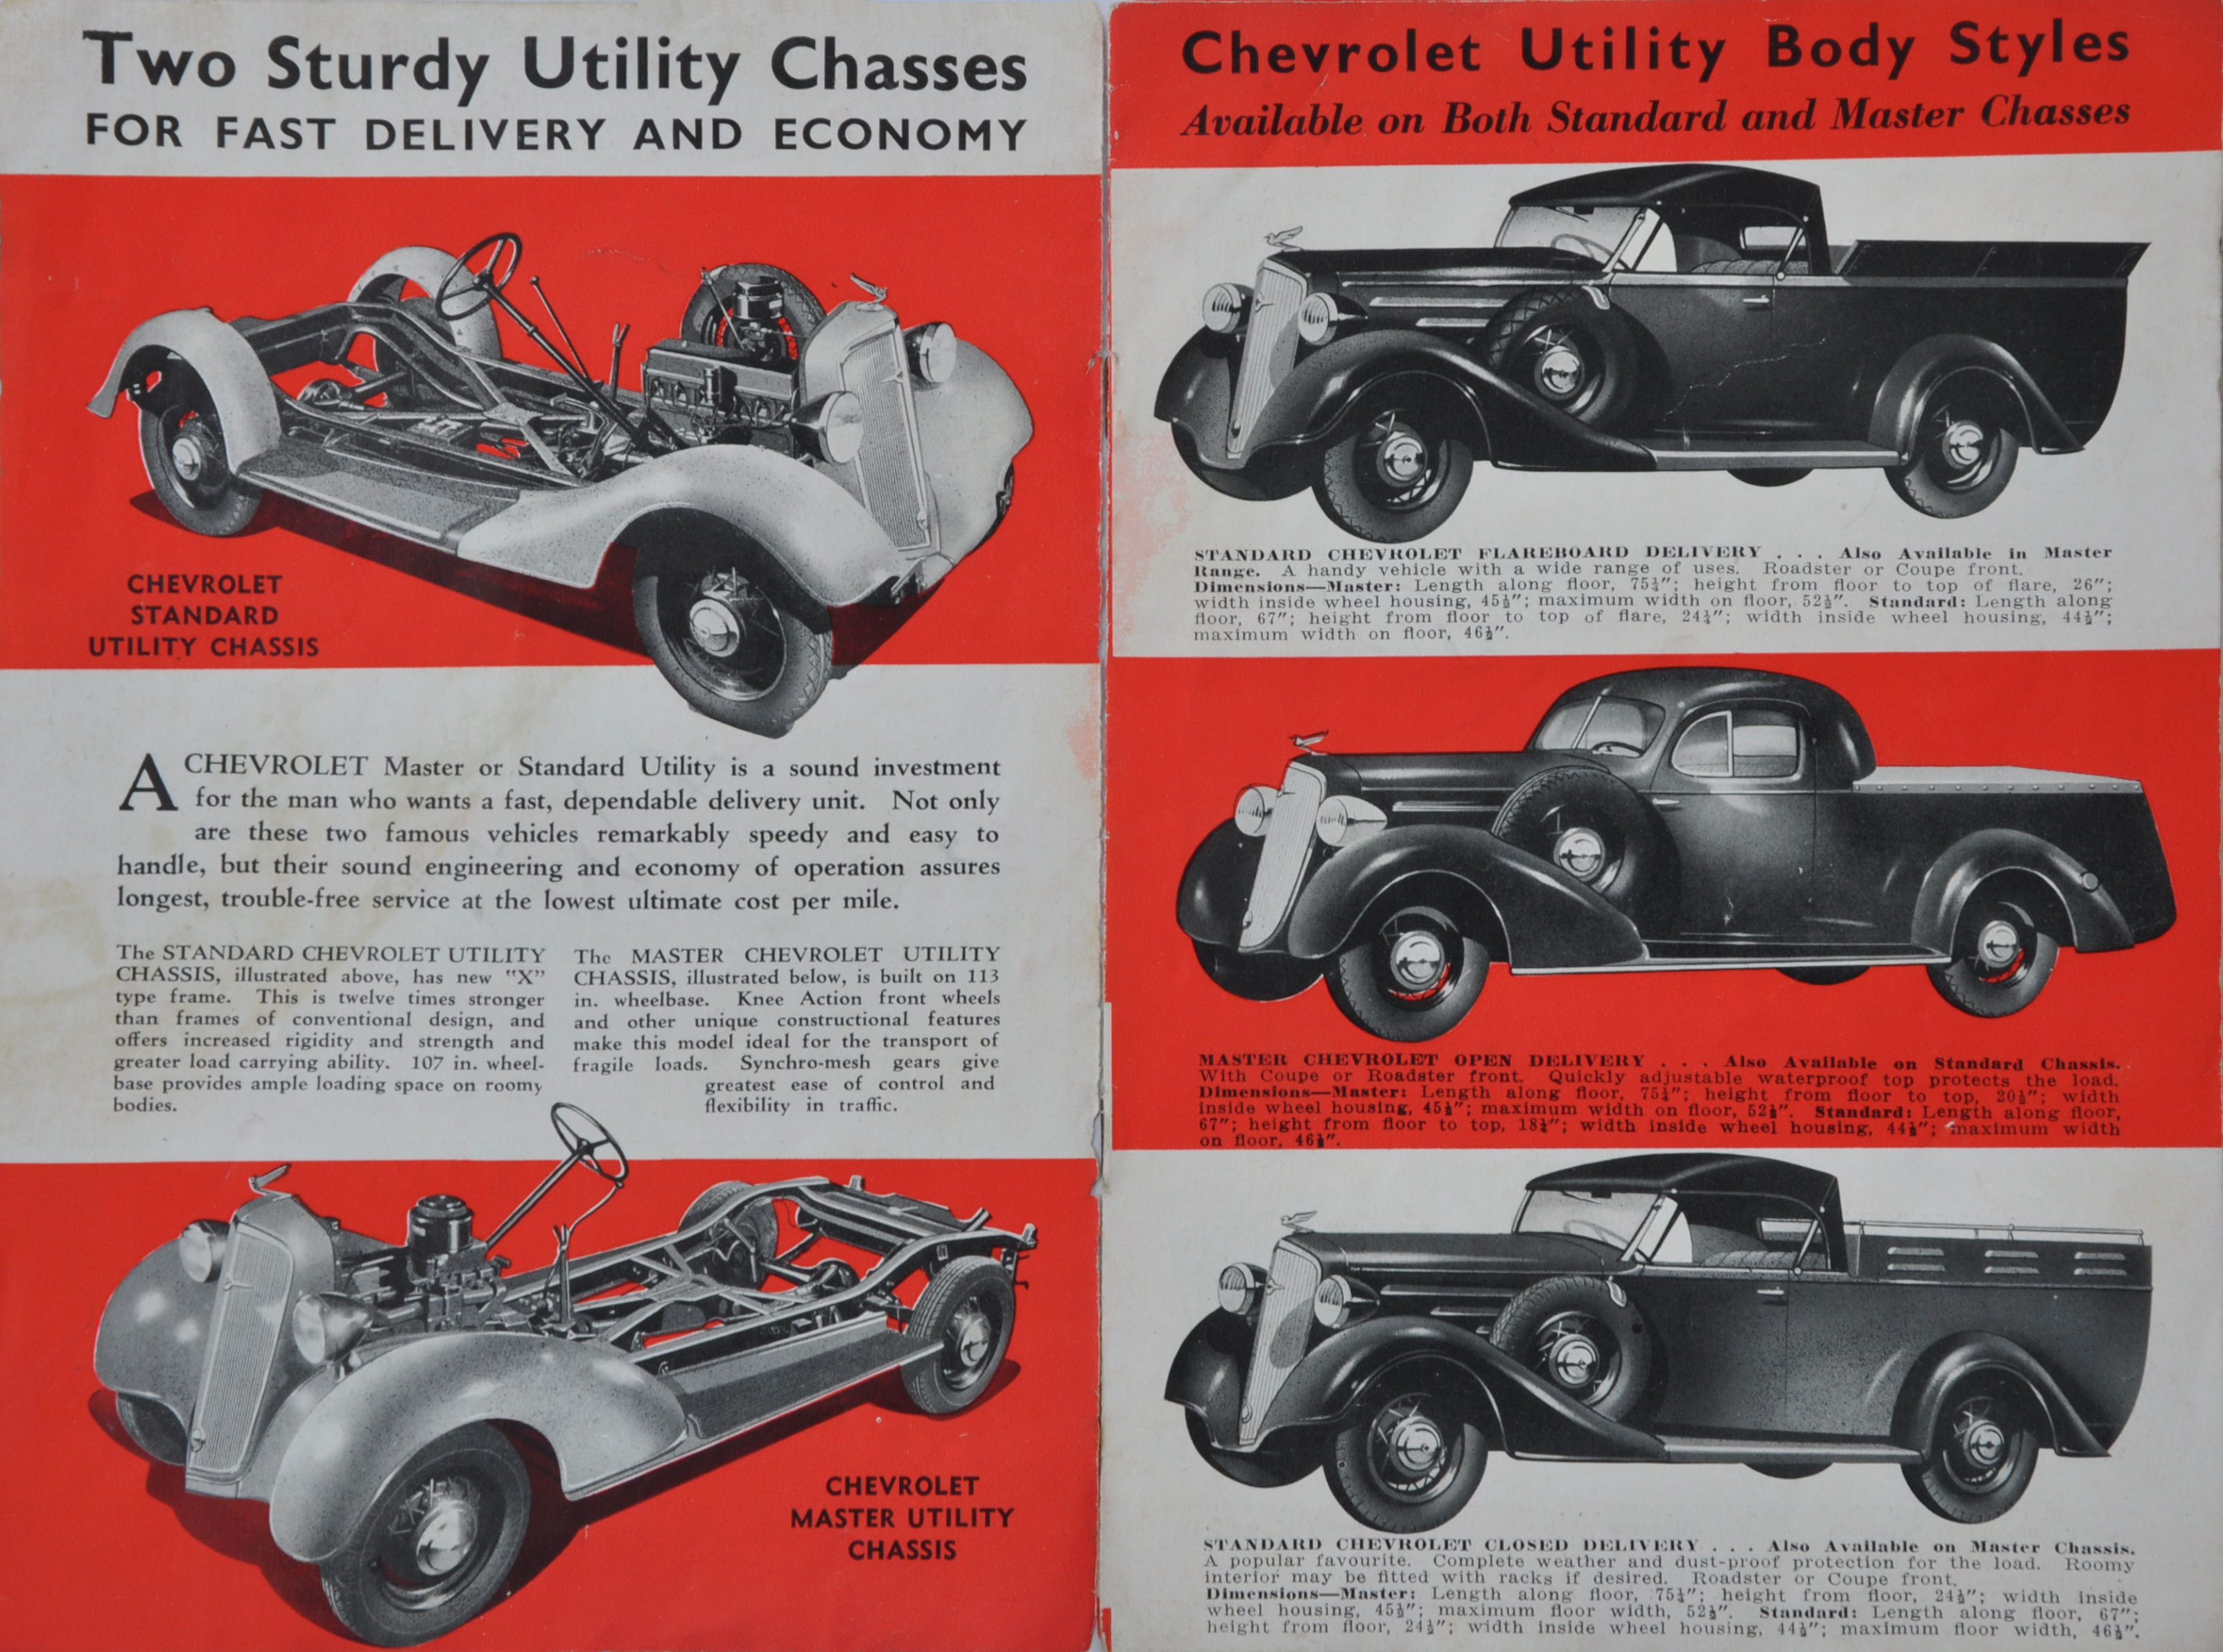 1935 Chevrolet Utility Vehicles Brochure